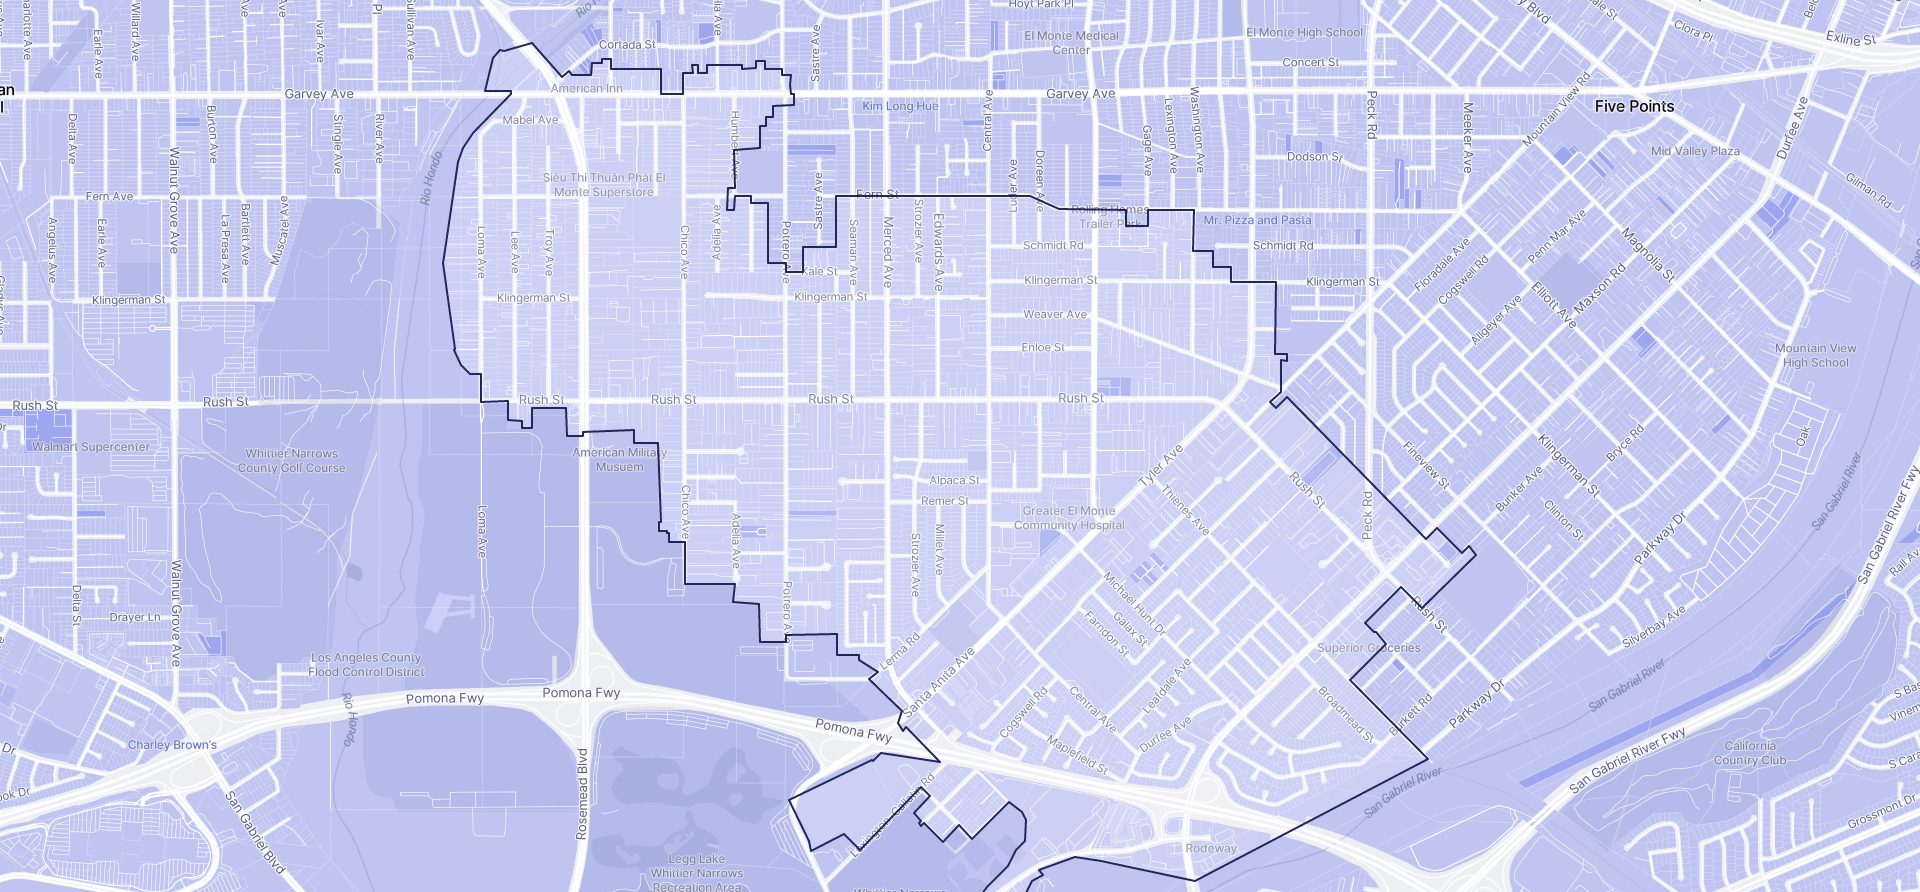 Image of South El Monte boundaries on a map.